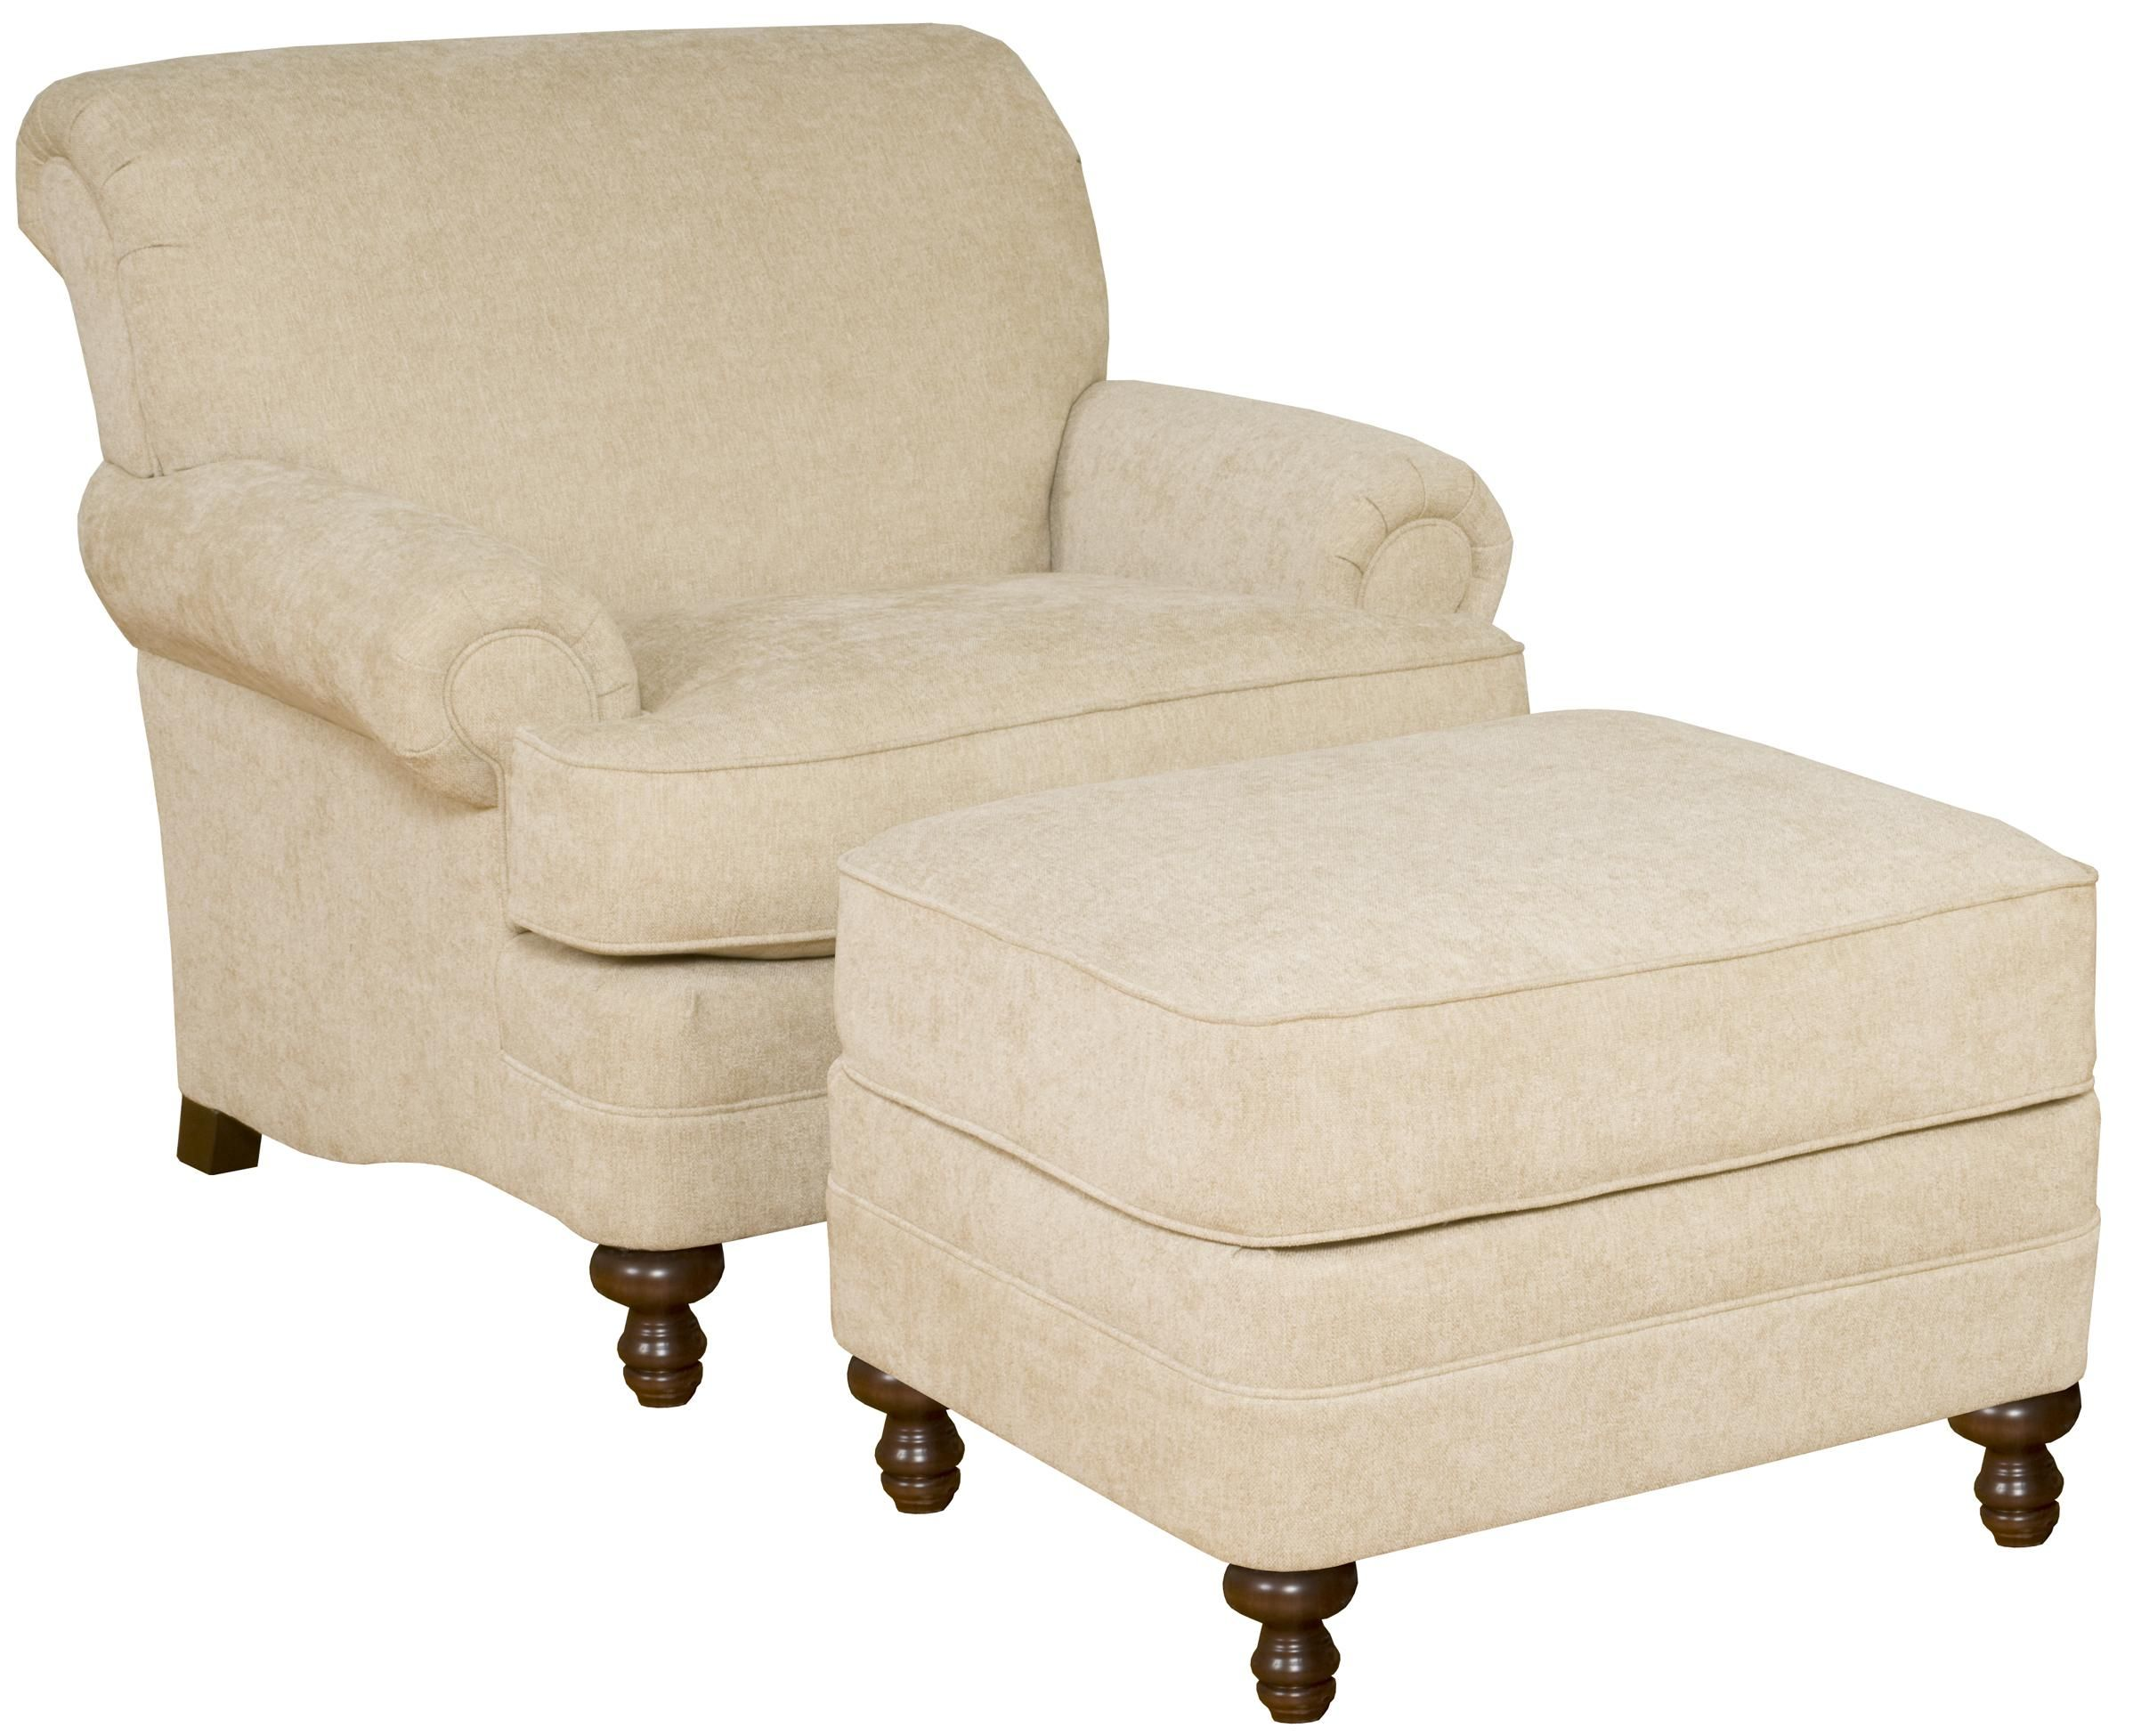 Amanda Upholstered Rolled Arm Chair and Ottoman